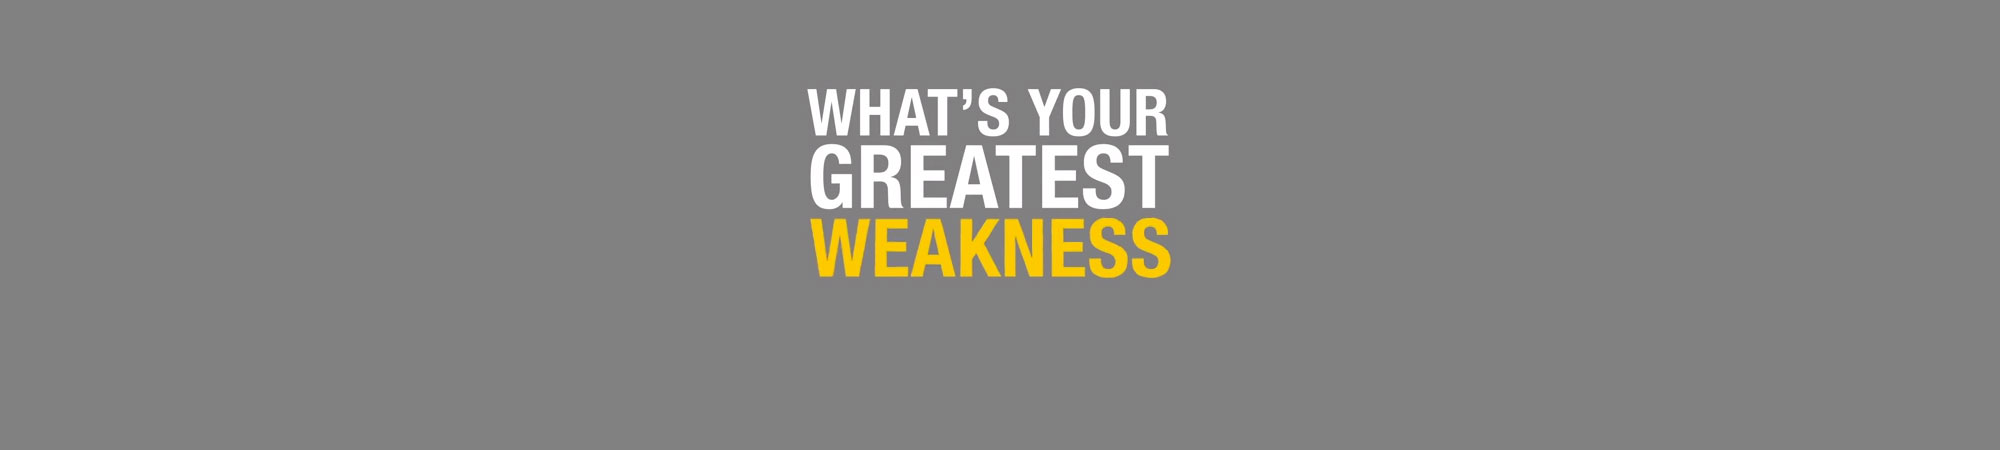 INTERVIEW QUESTION TIPS: WHAT IS YOUR GREATEST WEAKNESS?